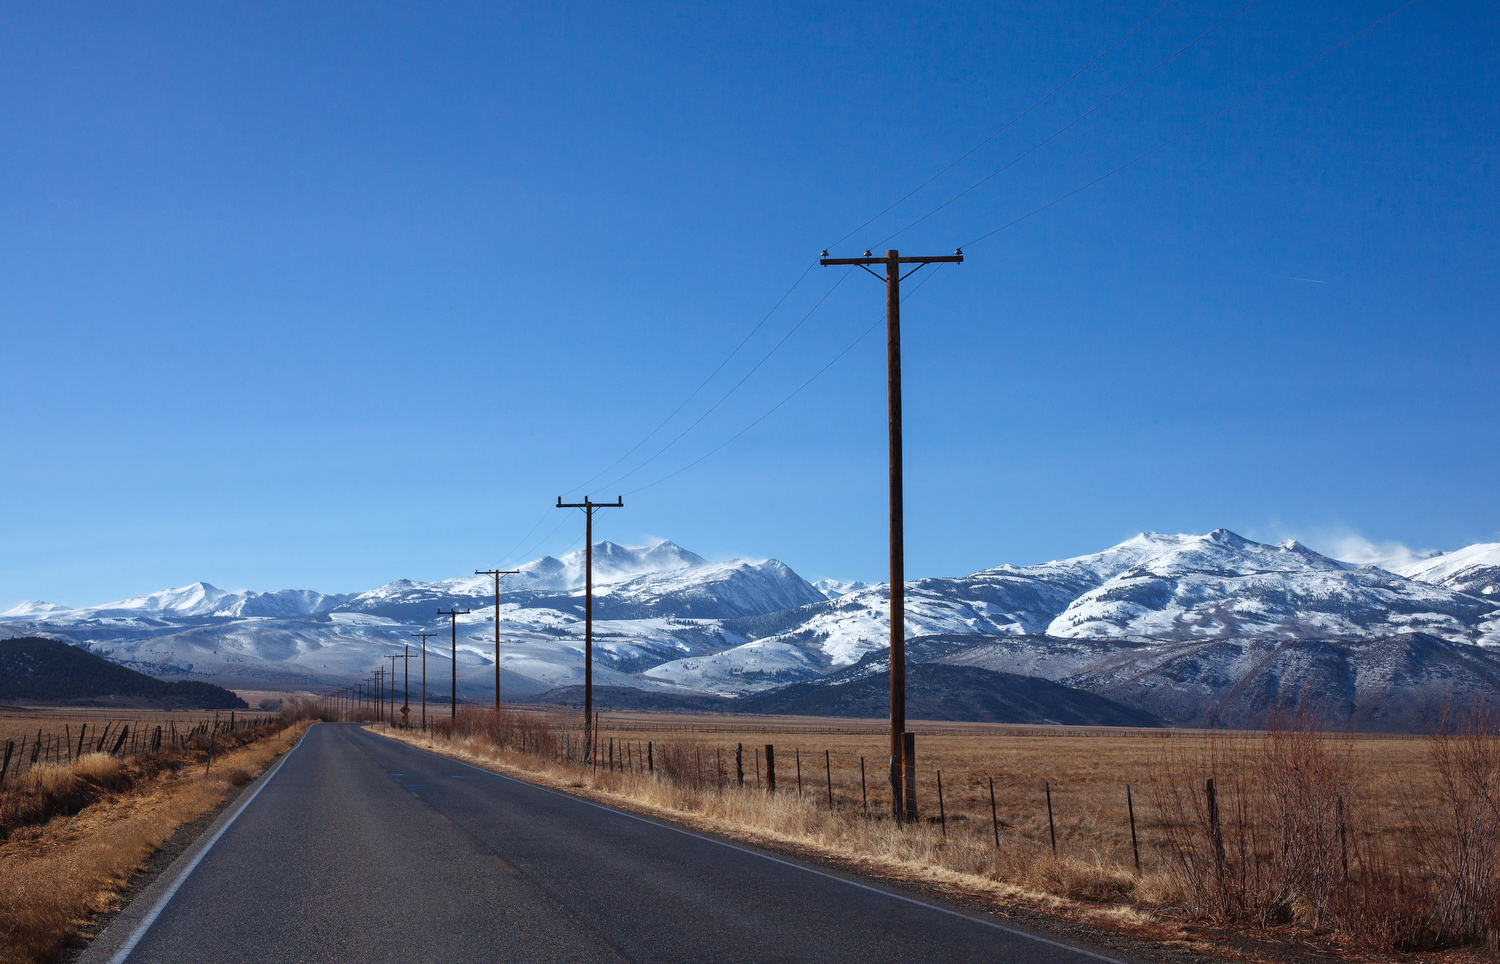 U.S. Route 359 through the Eastern Sierras is one of America's best road trips. Experiencing it in the winter with no one around is even better.